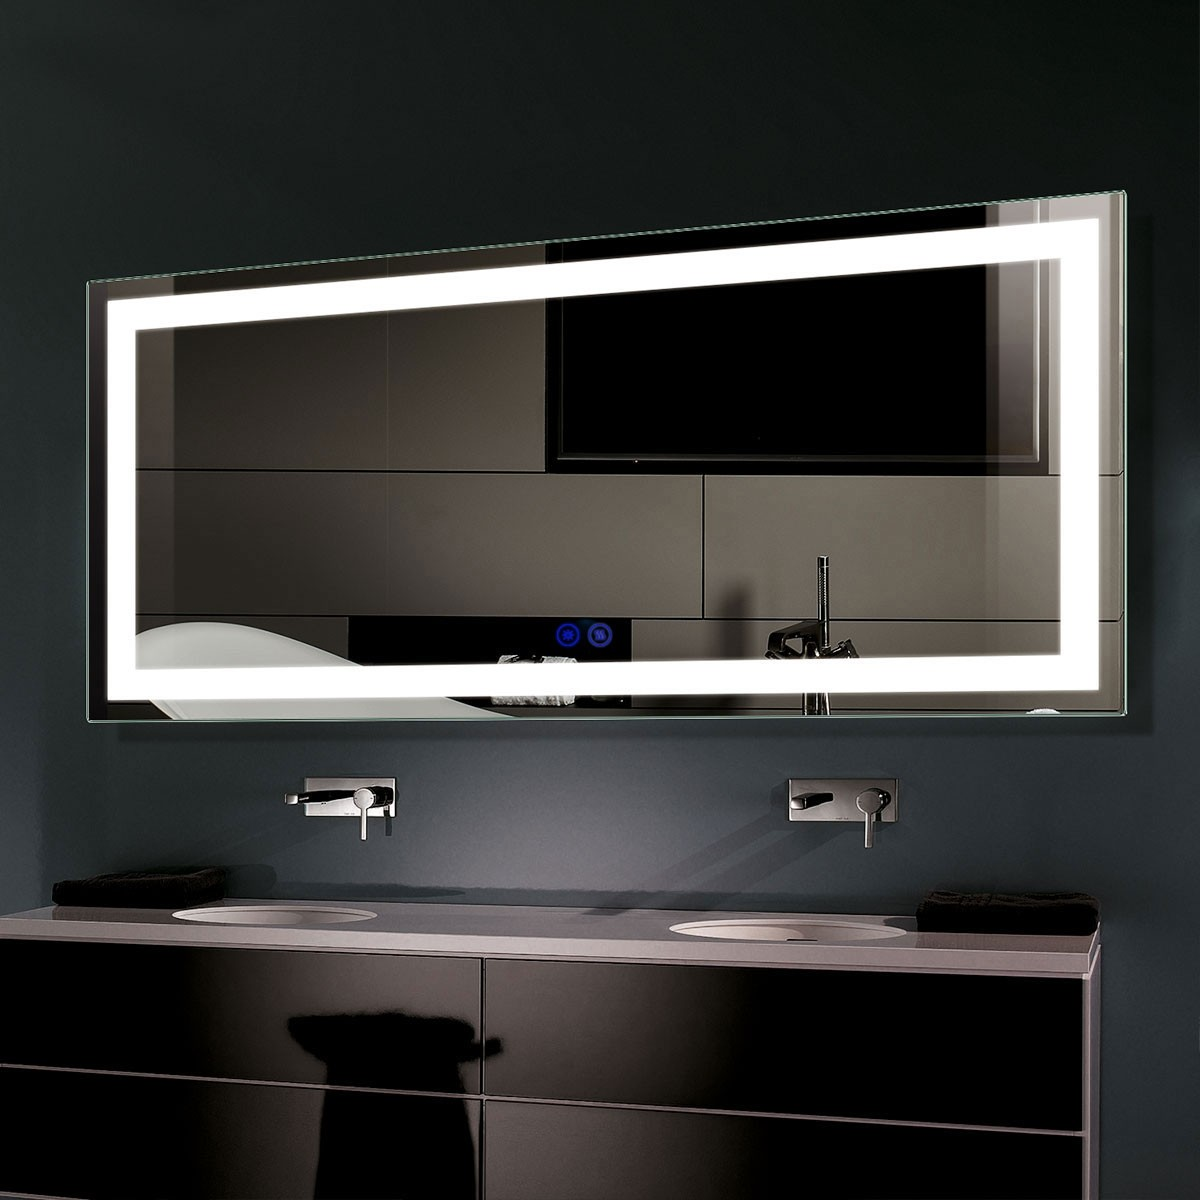 DECORAPORT 60 x 28 Inch LED Bathroom Mirror with Touch Button, Anti Fog, Dimmable, Vertical & Horizontal Mount (D204-6028)